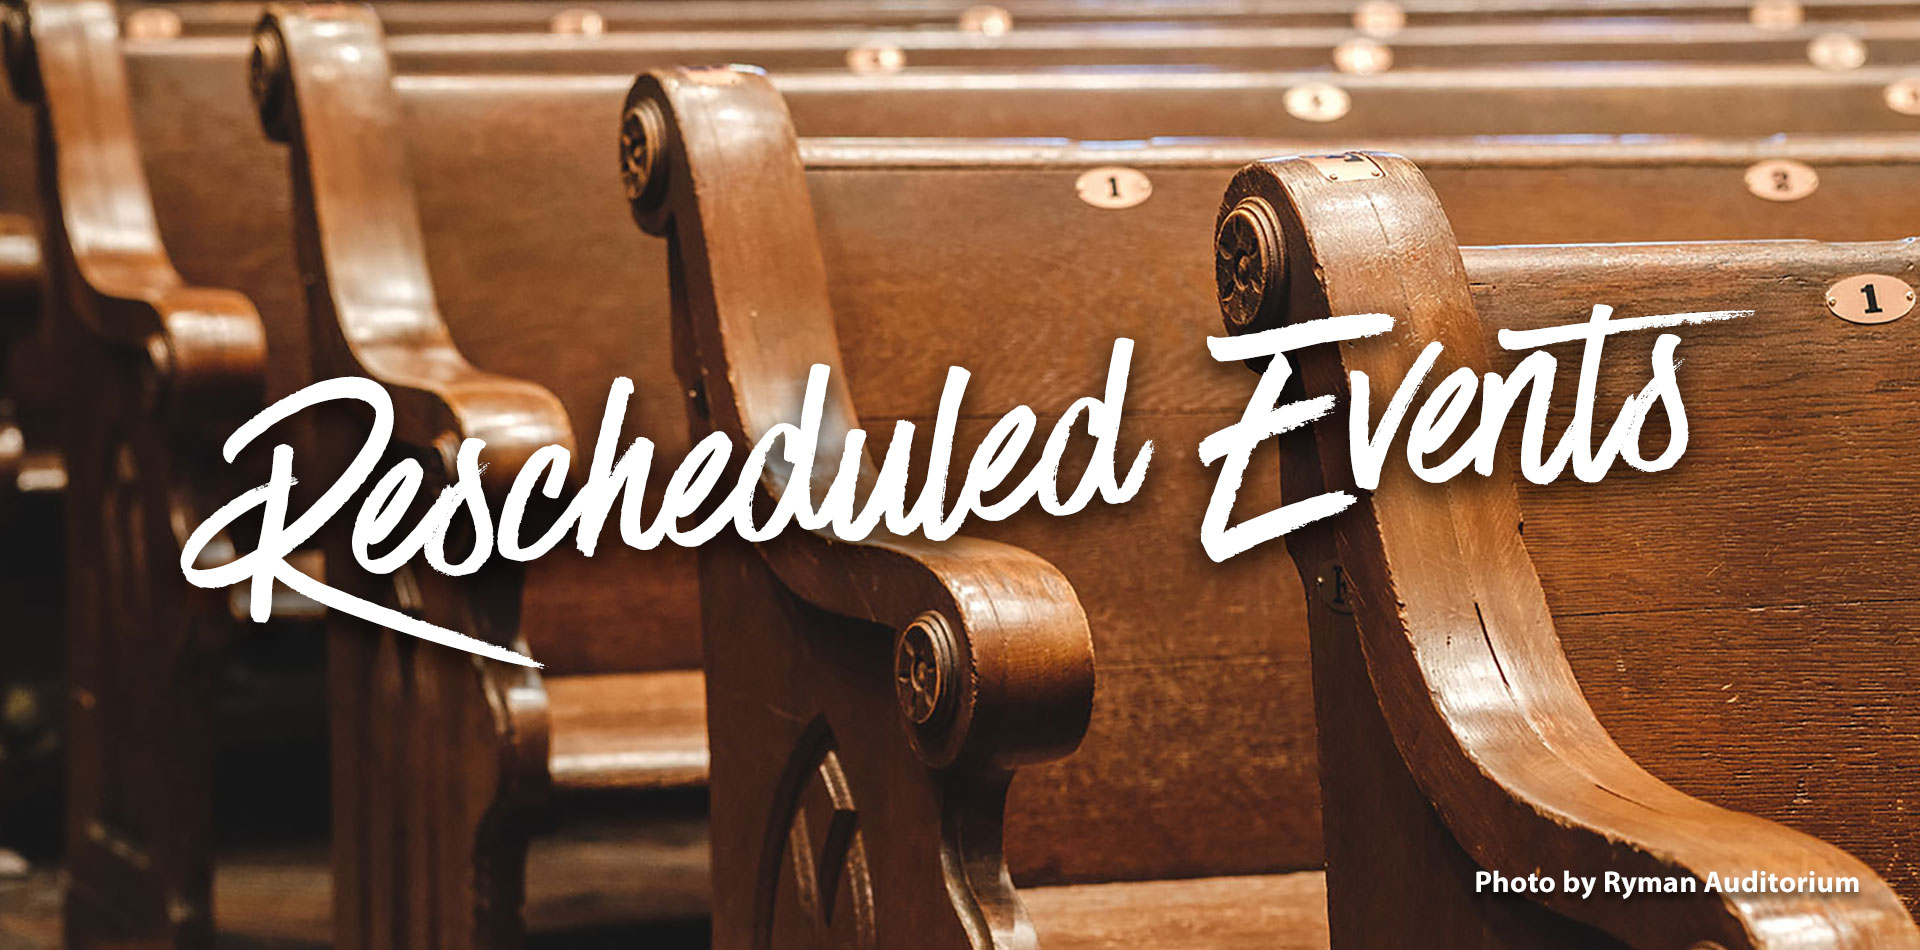 Rescheduled Events